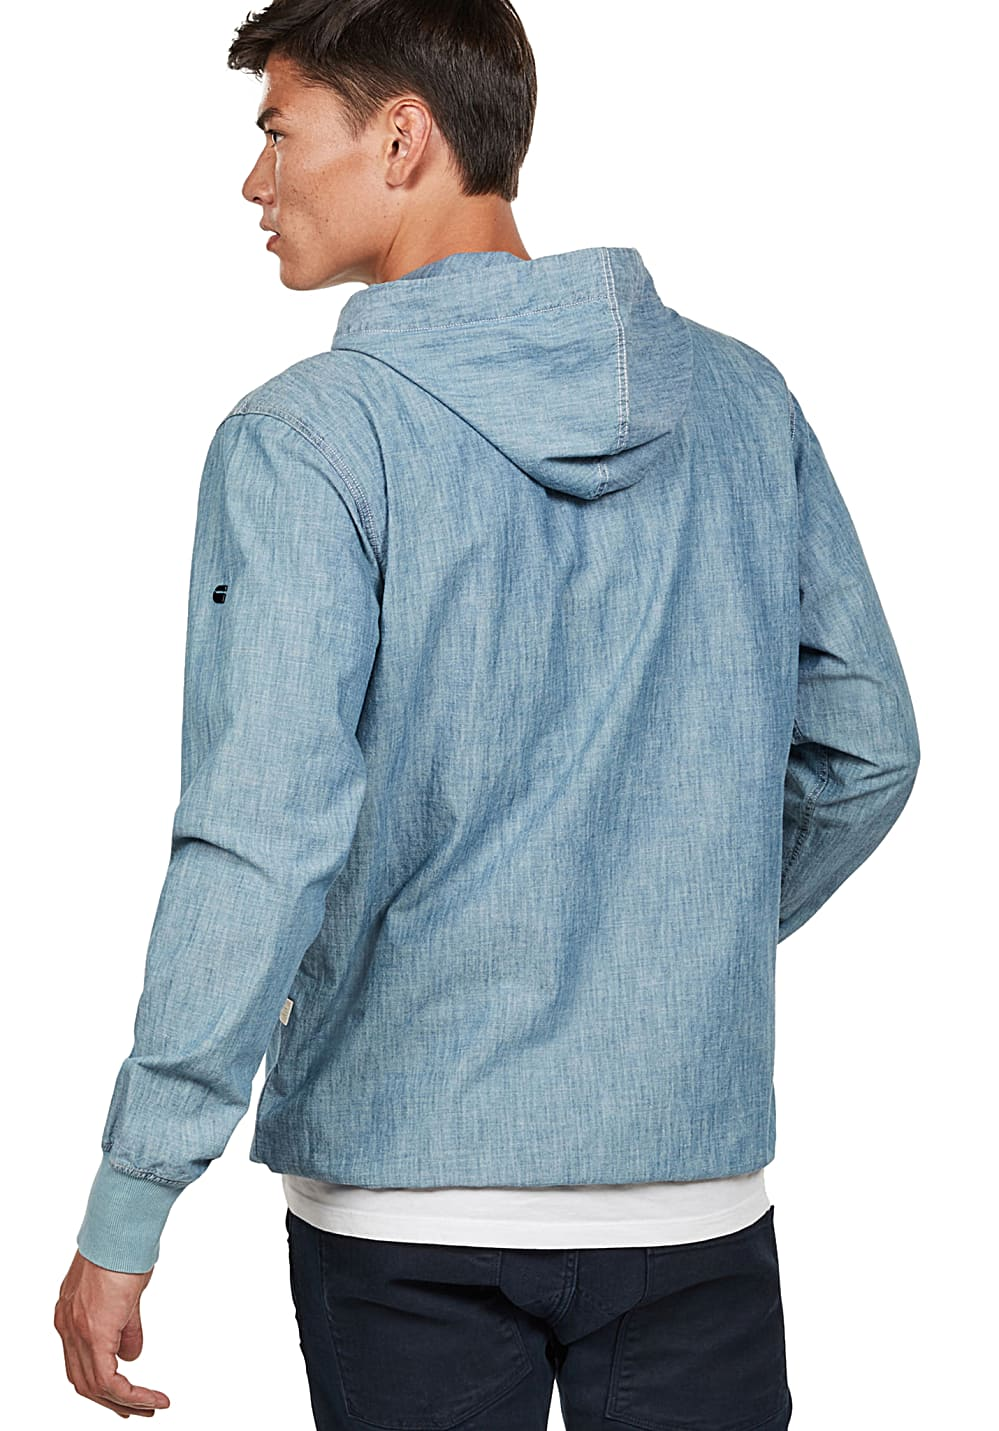 9c96e67a764 ... G-STAR Woveneat - Hooded Sweatshirt for Men - Blue. Back to Overview.  1; 2. Previous